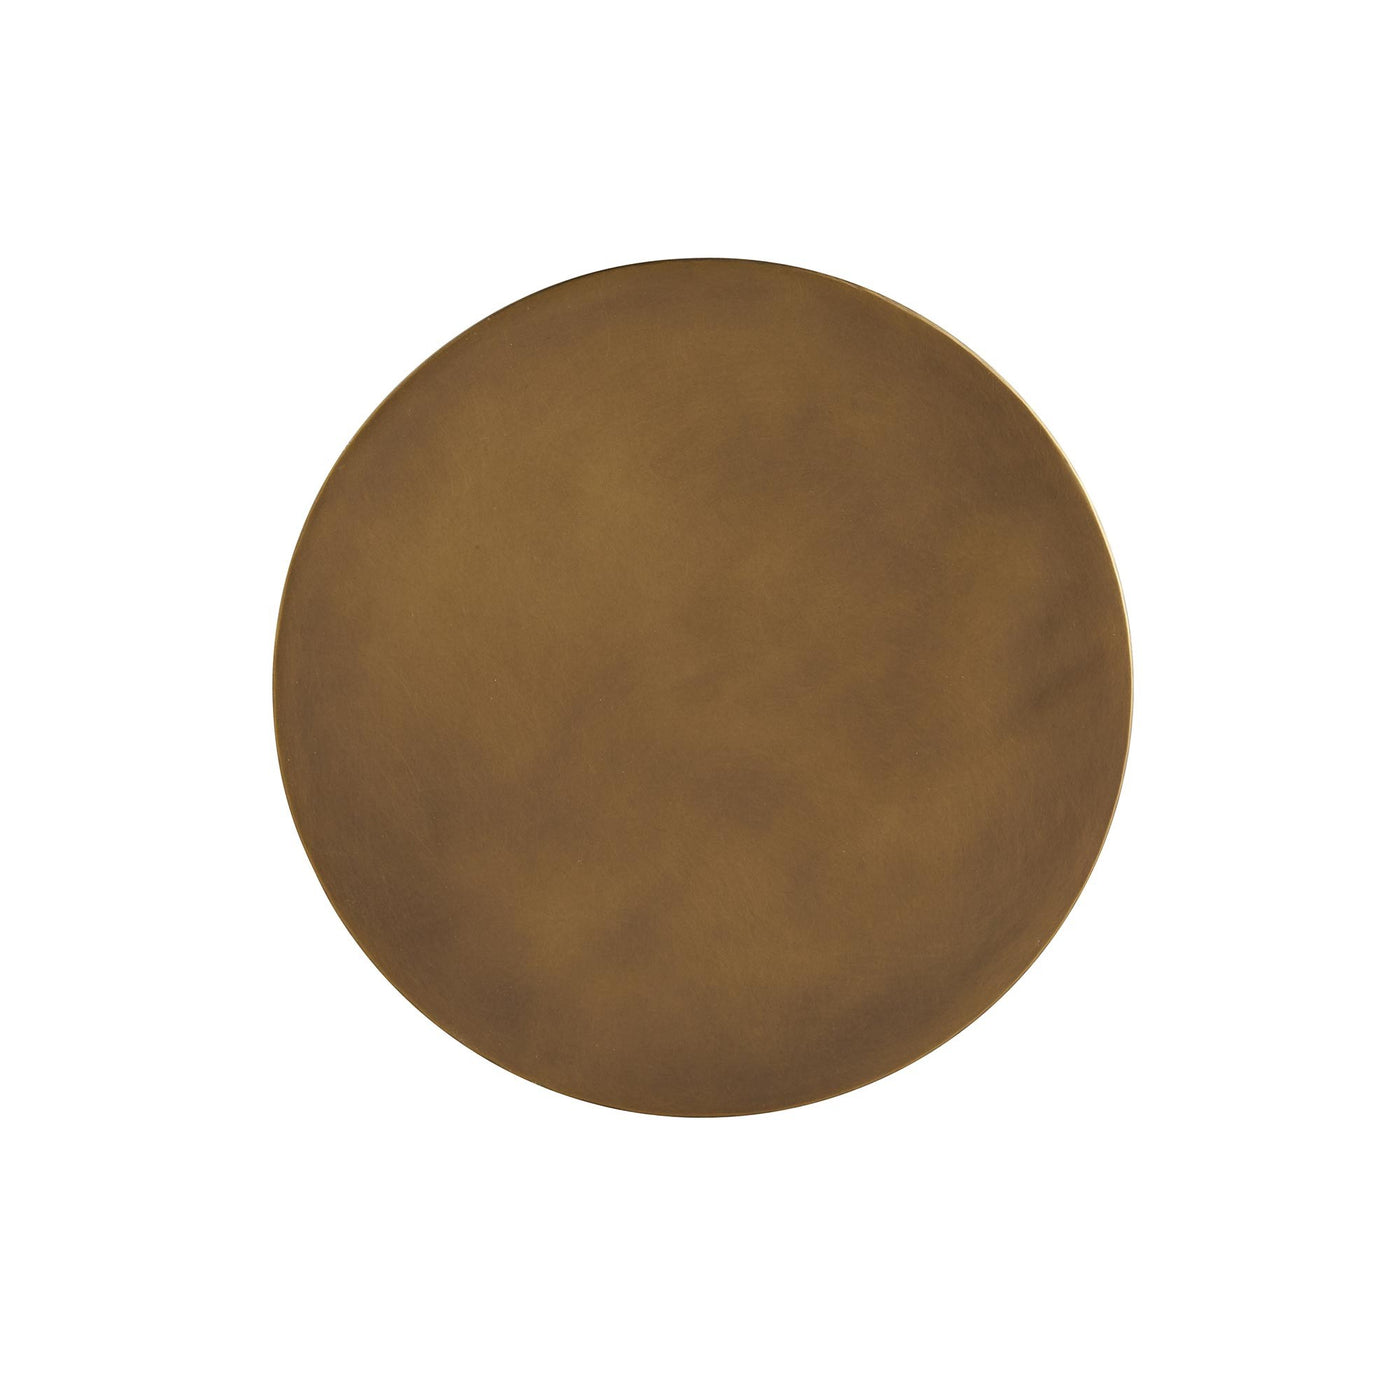 arteriors Addison accent table round brass top